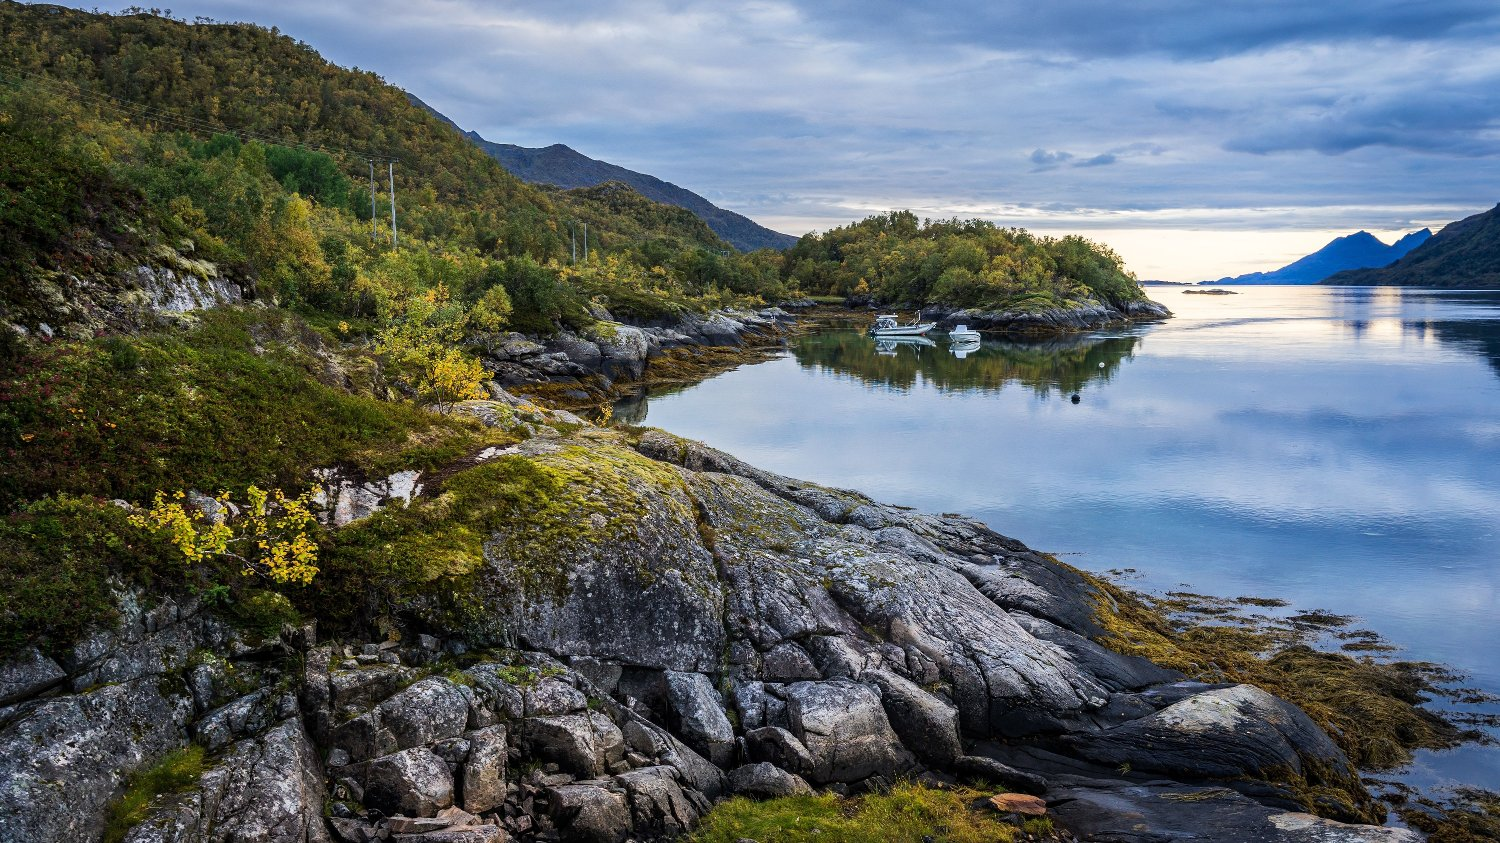 Landscape in norwegian fiord with sea and mountains, Lodingen, Norway